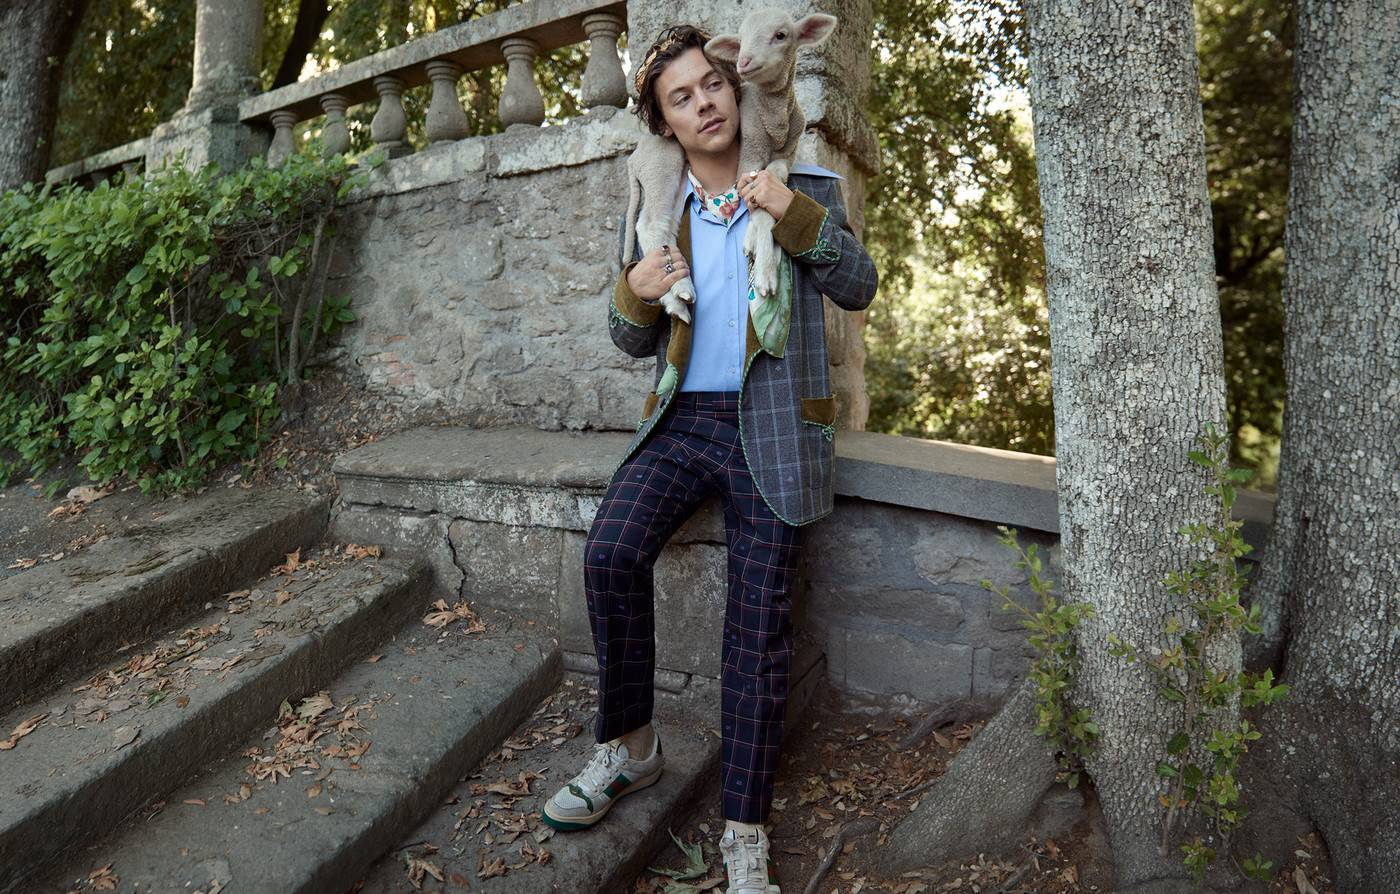 Gucci Harry Styles Cruise 2019 Fashionela